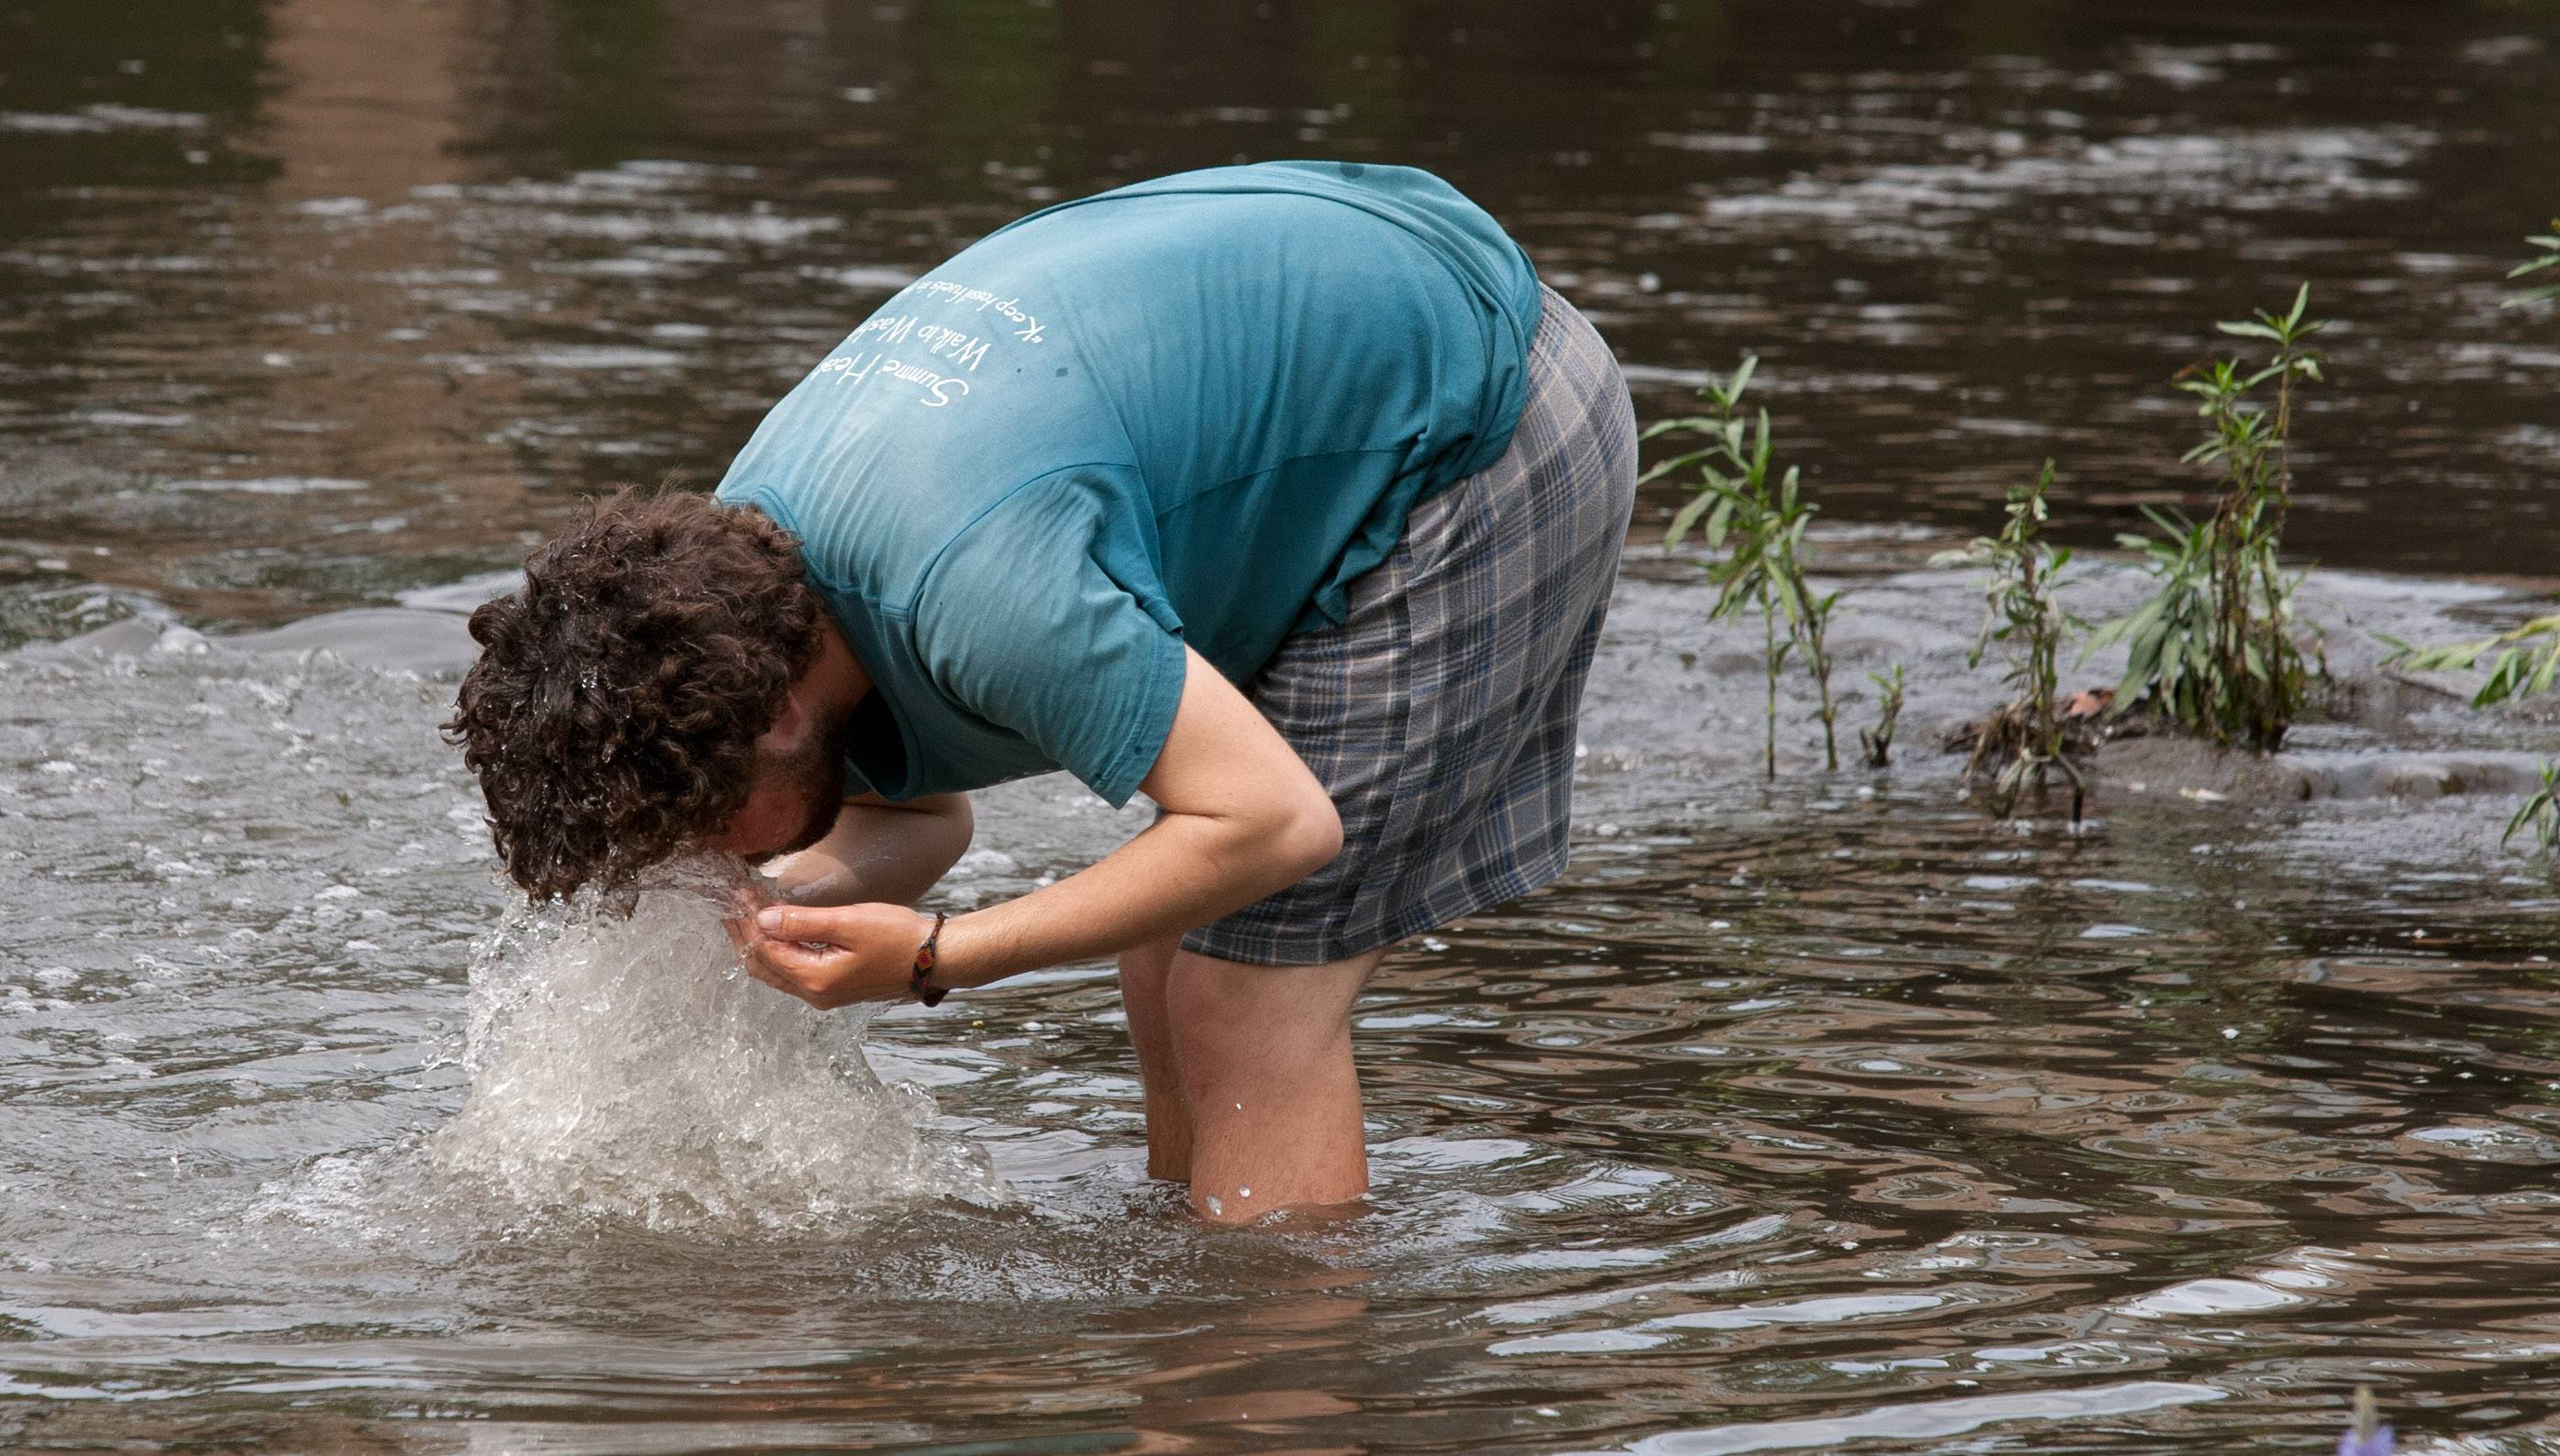 Benjamin Bushwick of Rockville, Md. refreshes himself in the west branch of the DuPage River in Warrenville Thursday. He is one of about three dozen activists traveling on foot from Los Angeles to Washington D.C. as part of the Great March for Climate Action.